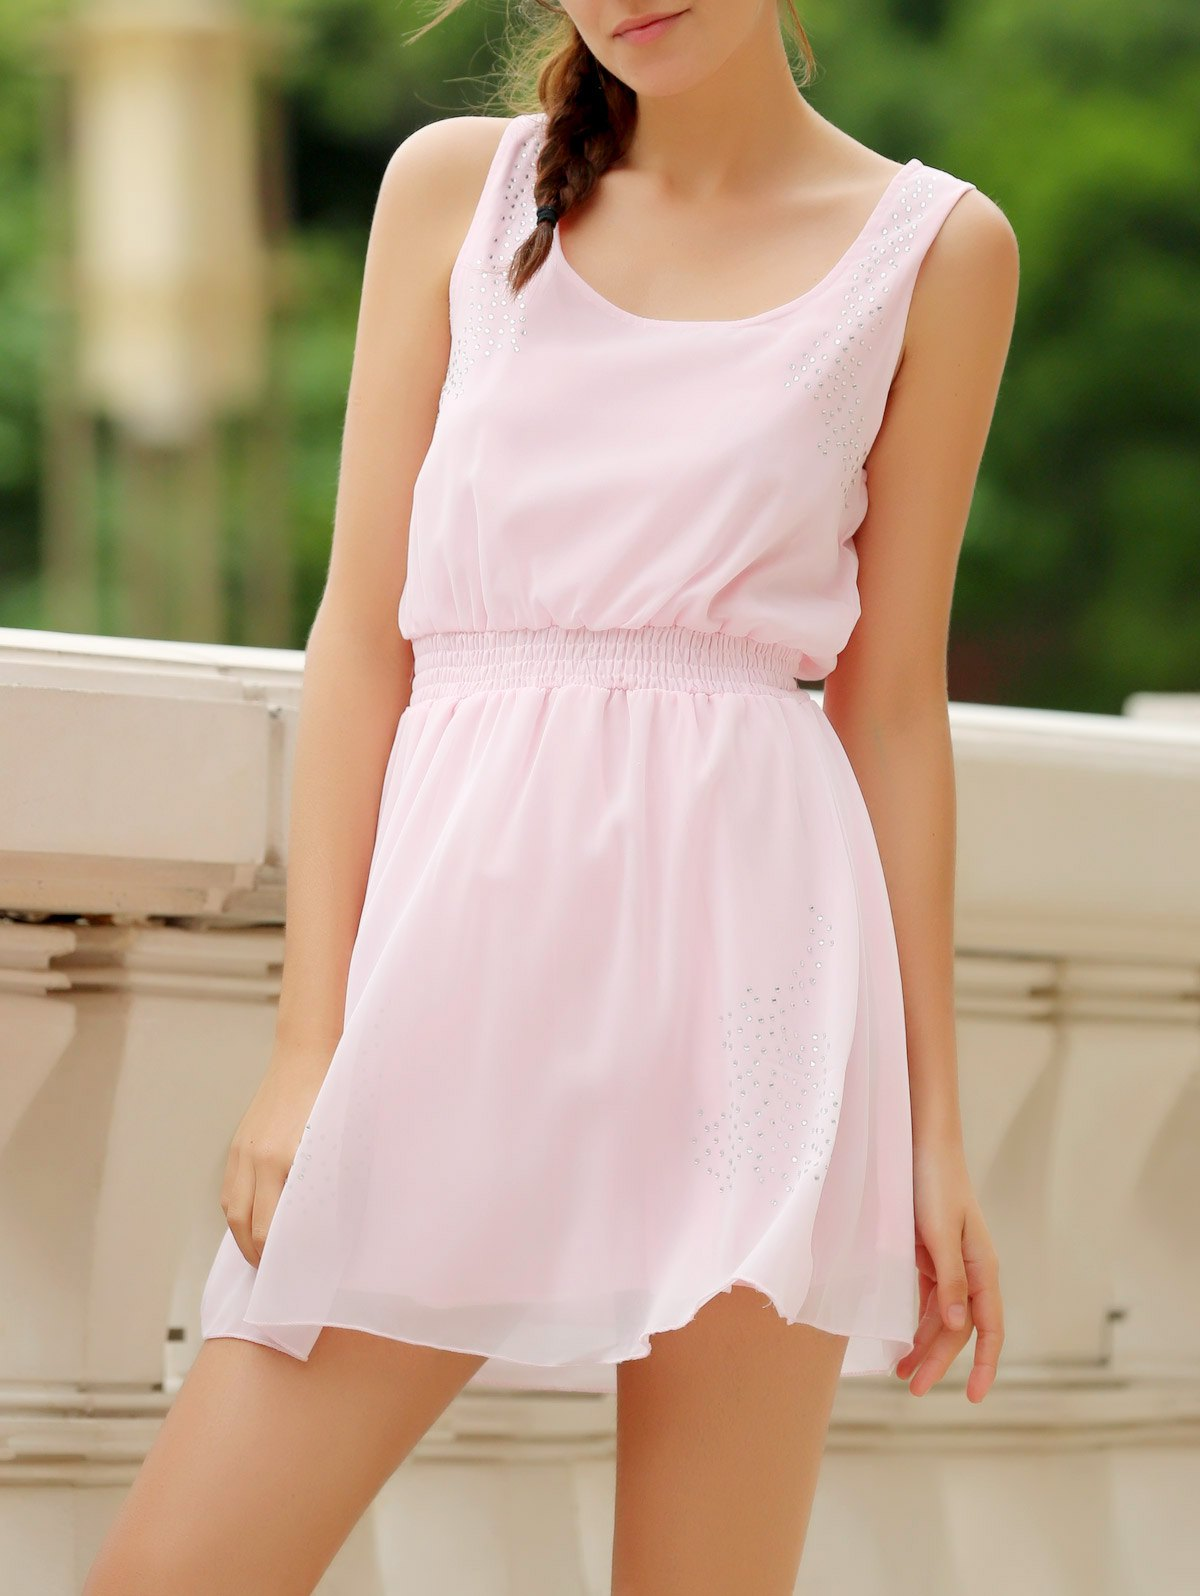 Simple Square Neck Sleeveless Solid Color Waist Drawstring Women's Dress - LIGHT PINK S